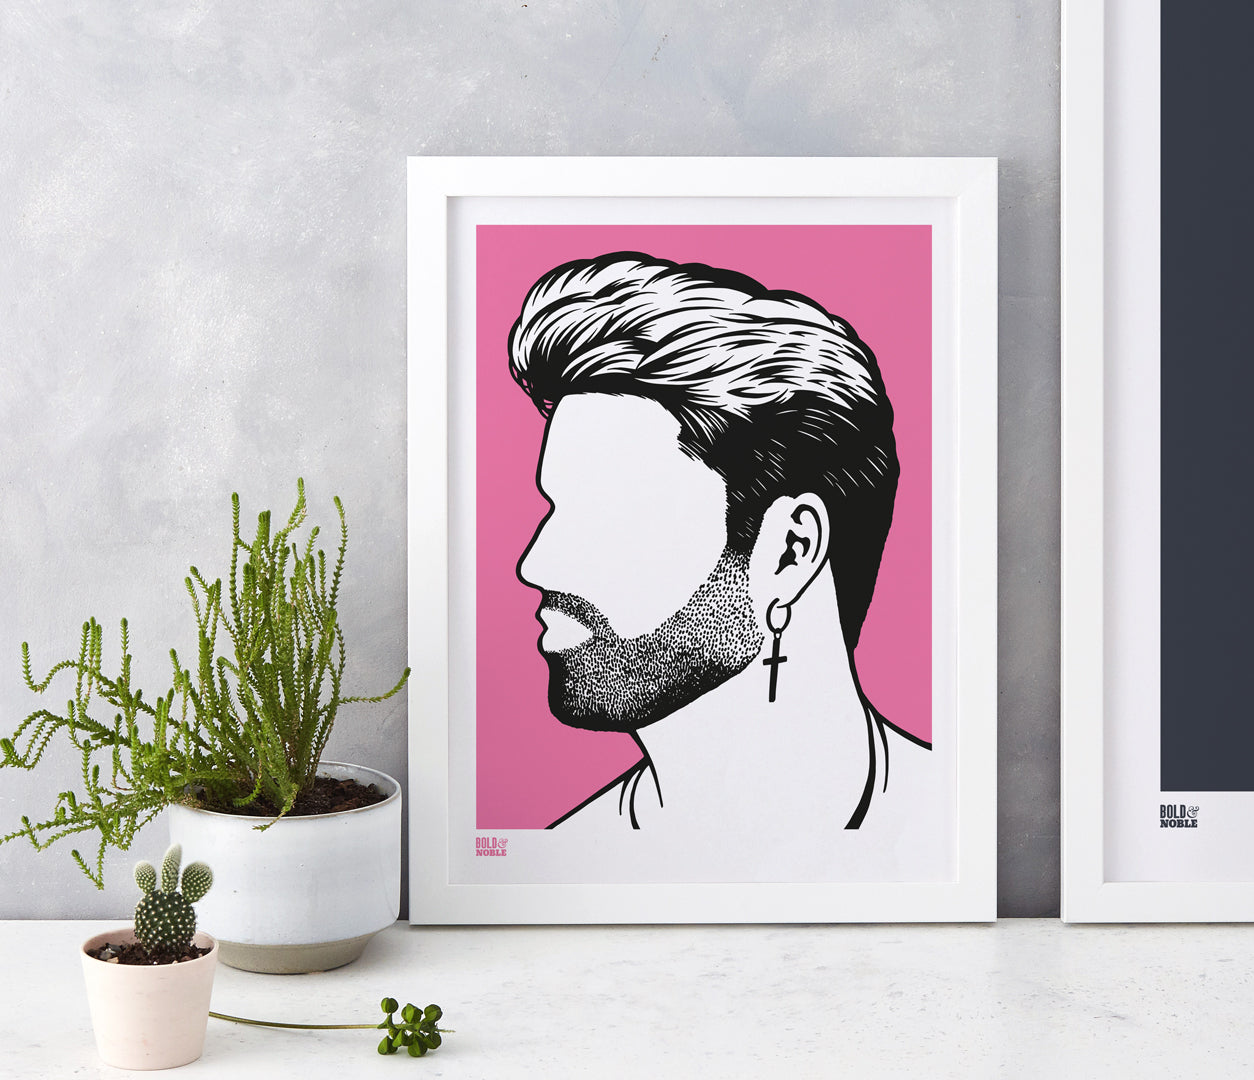 Pictures and Wall Art, Screen Printed George Michael print in pink